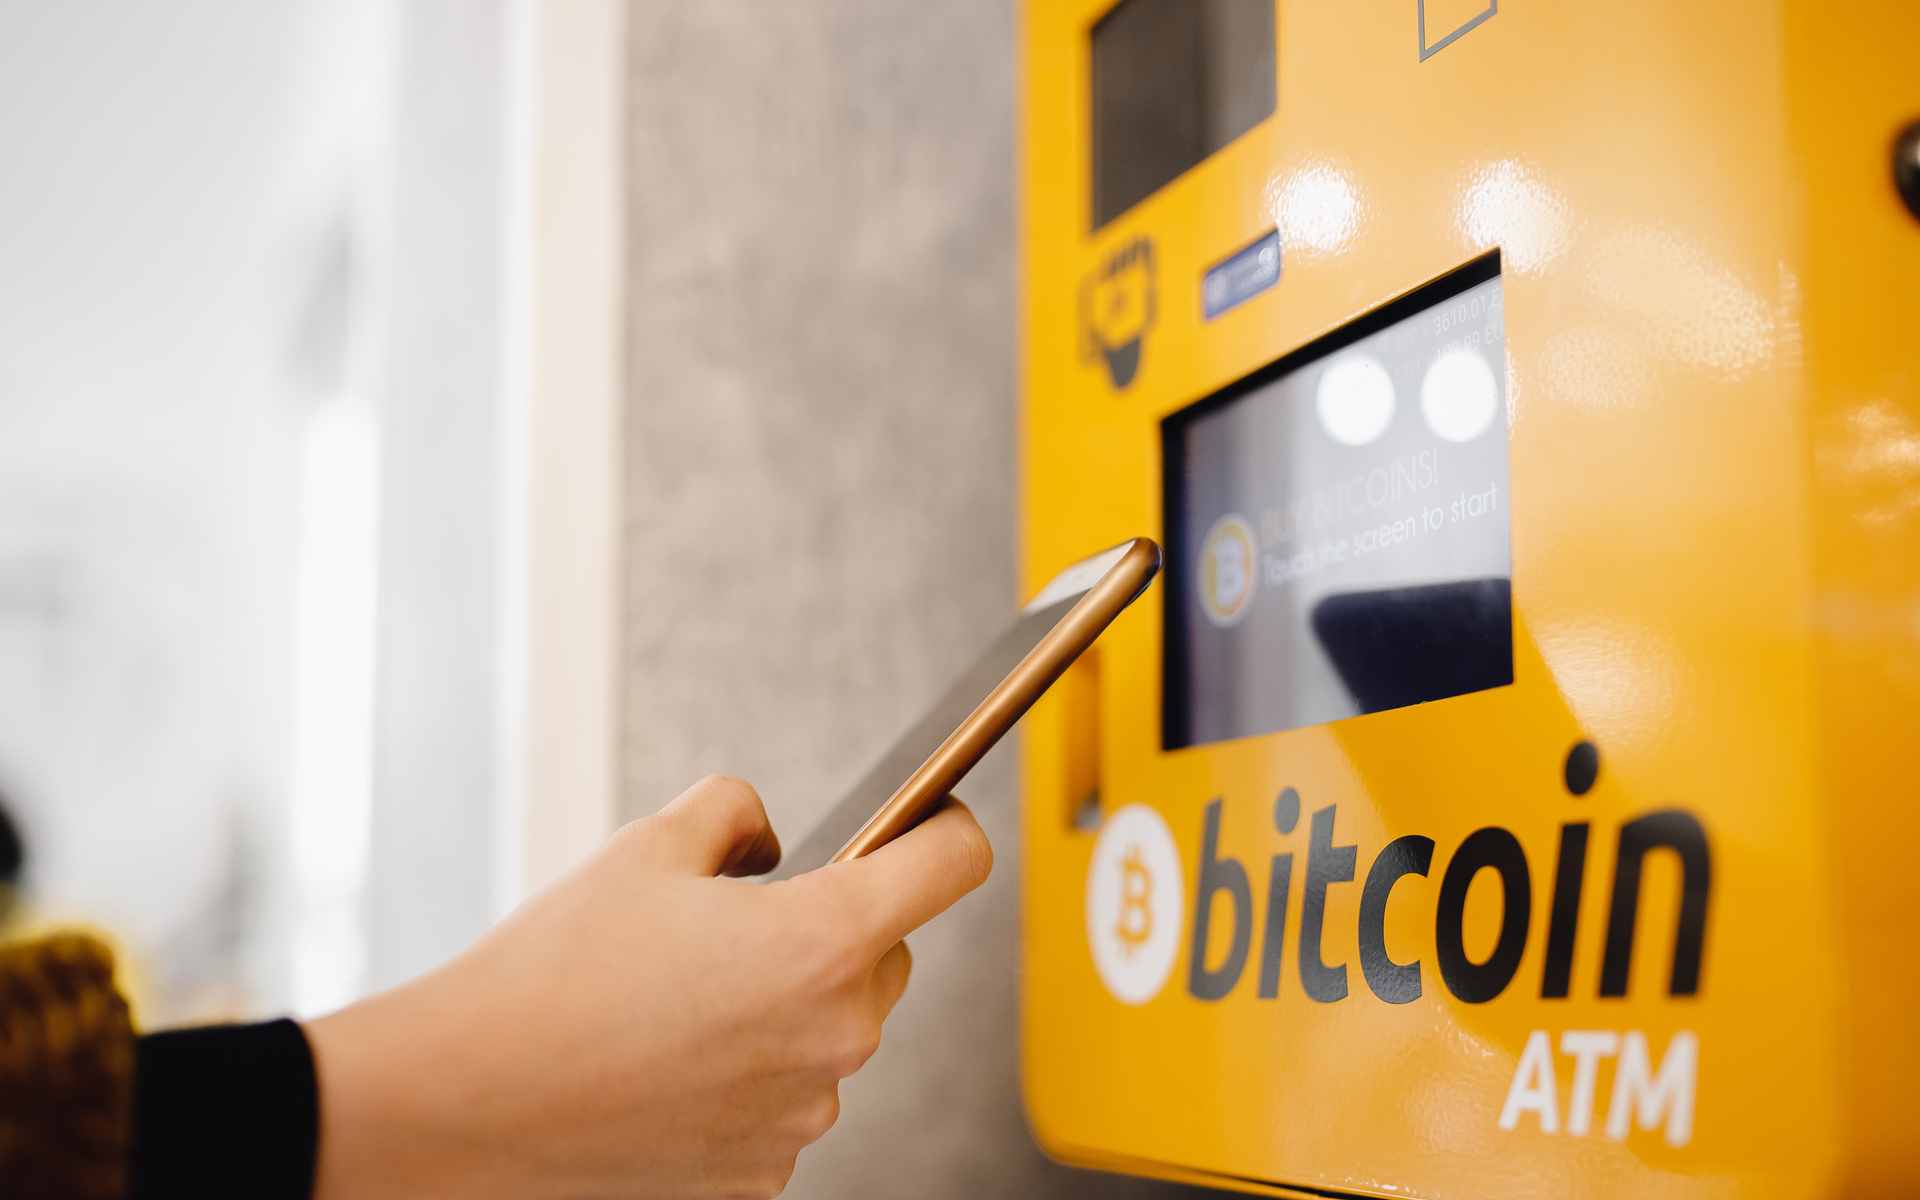 The very first Bitcoin ATM in Venezuela